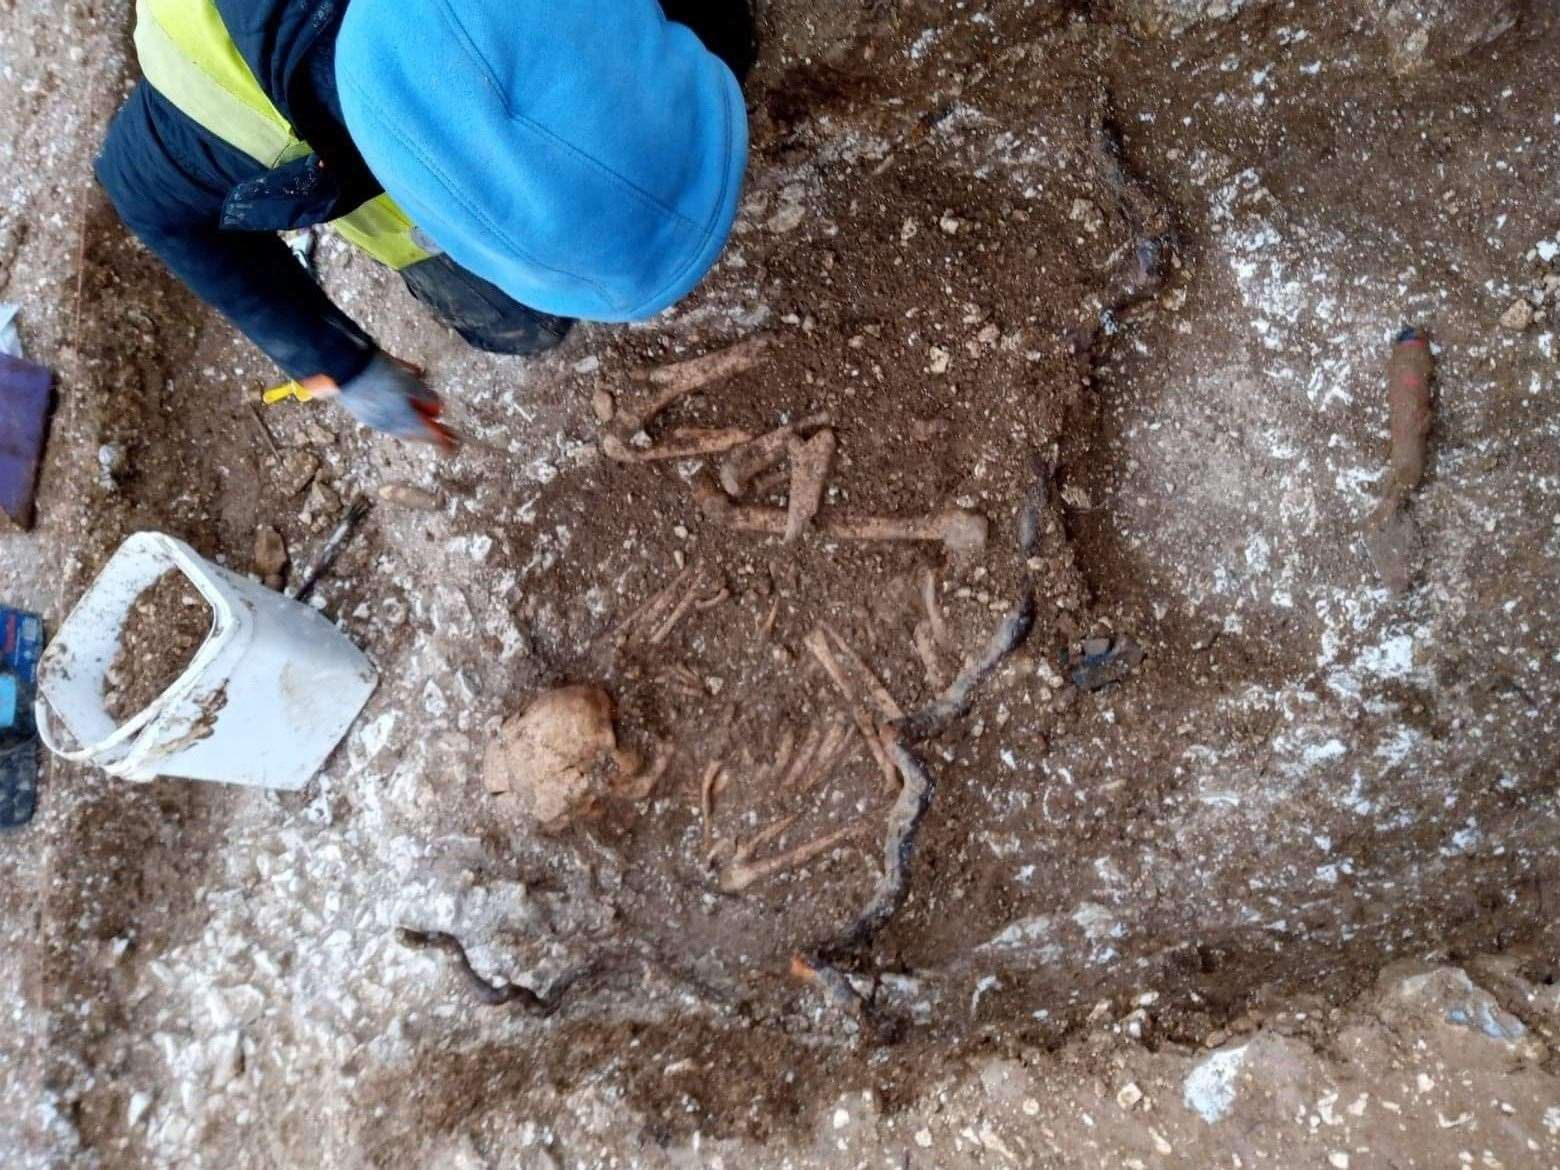 One of the skeletons found at Aylesham (29011957)